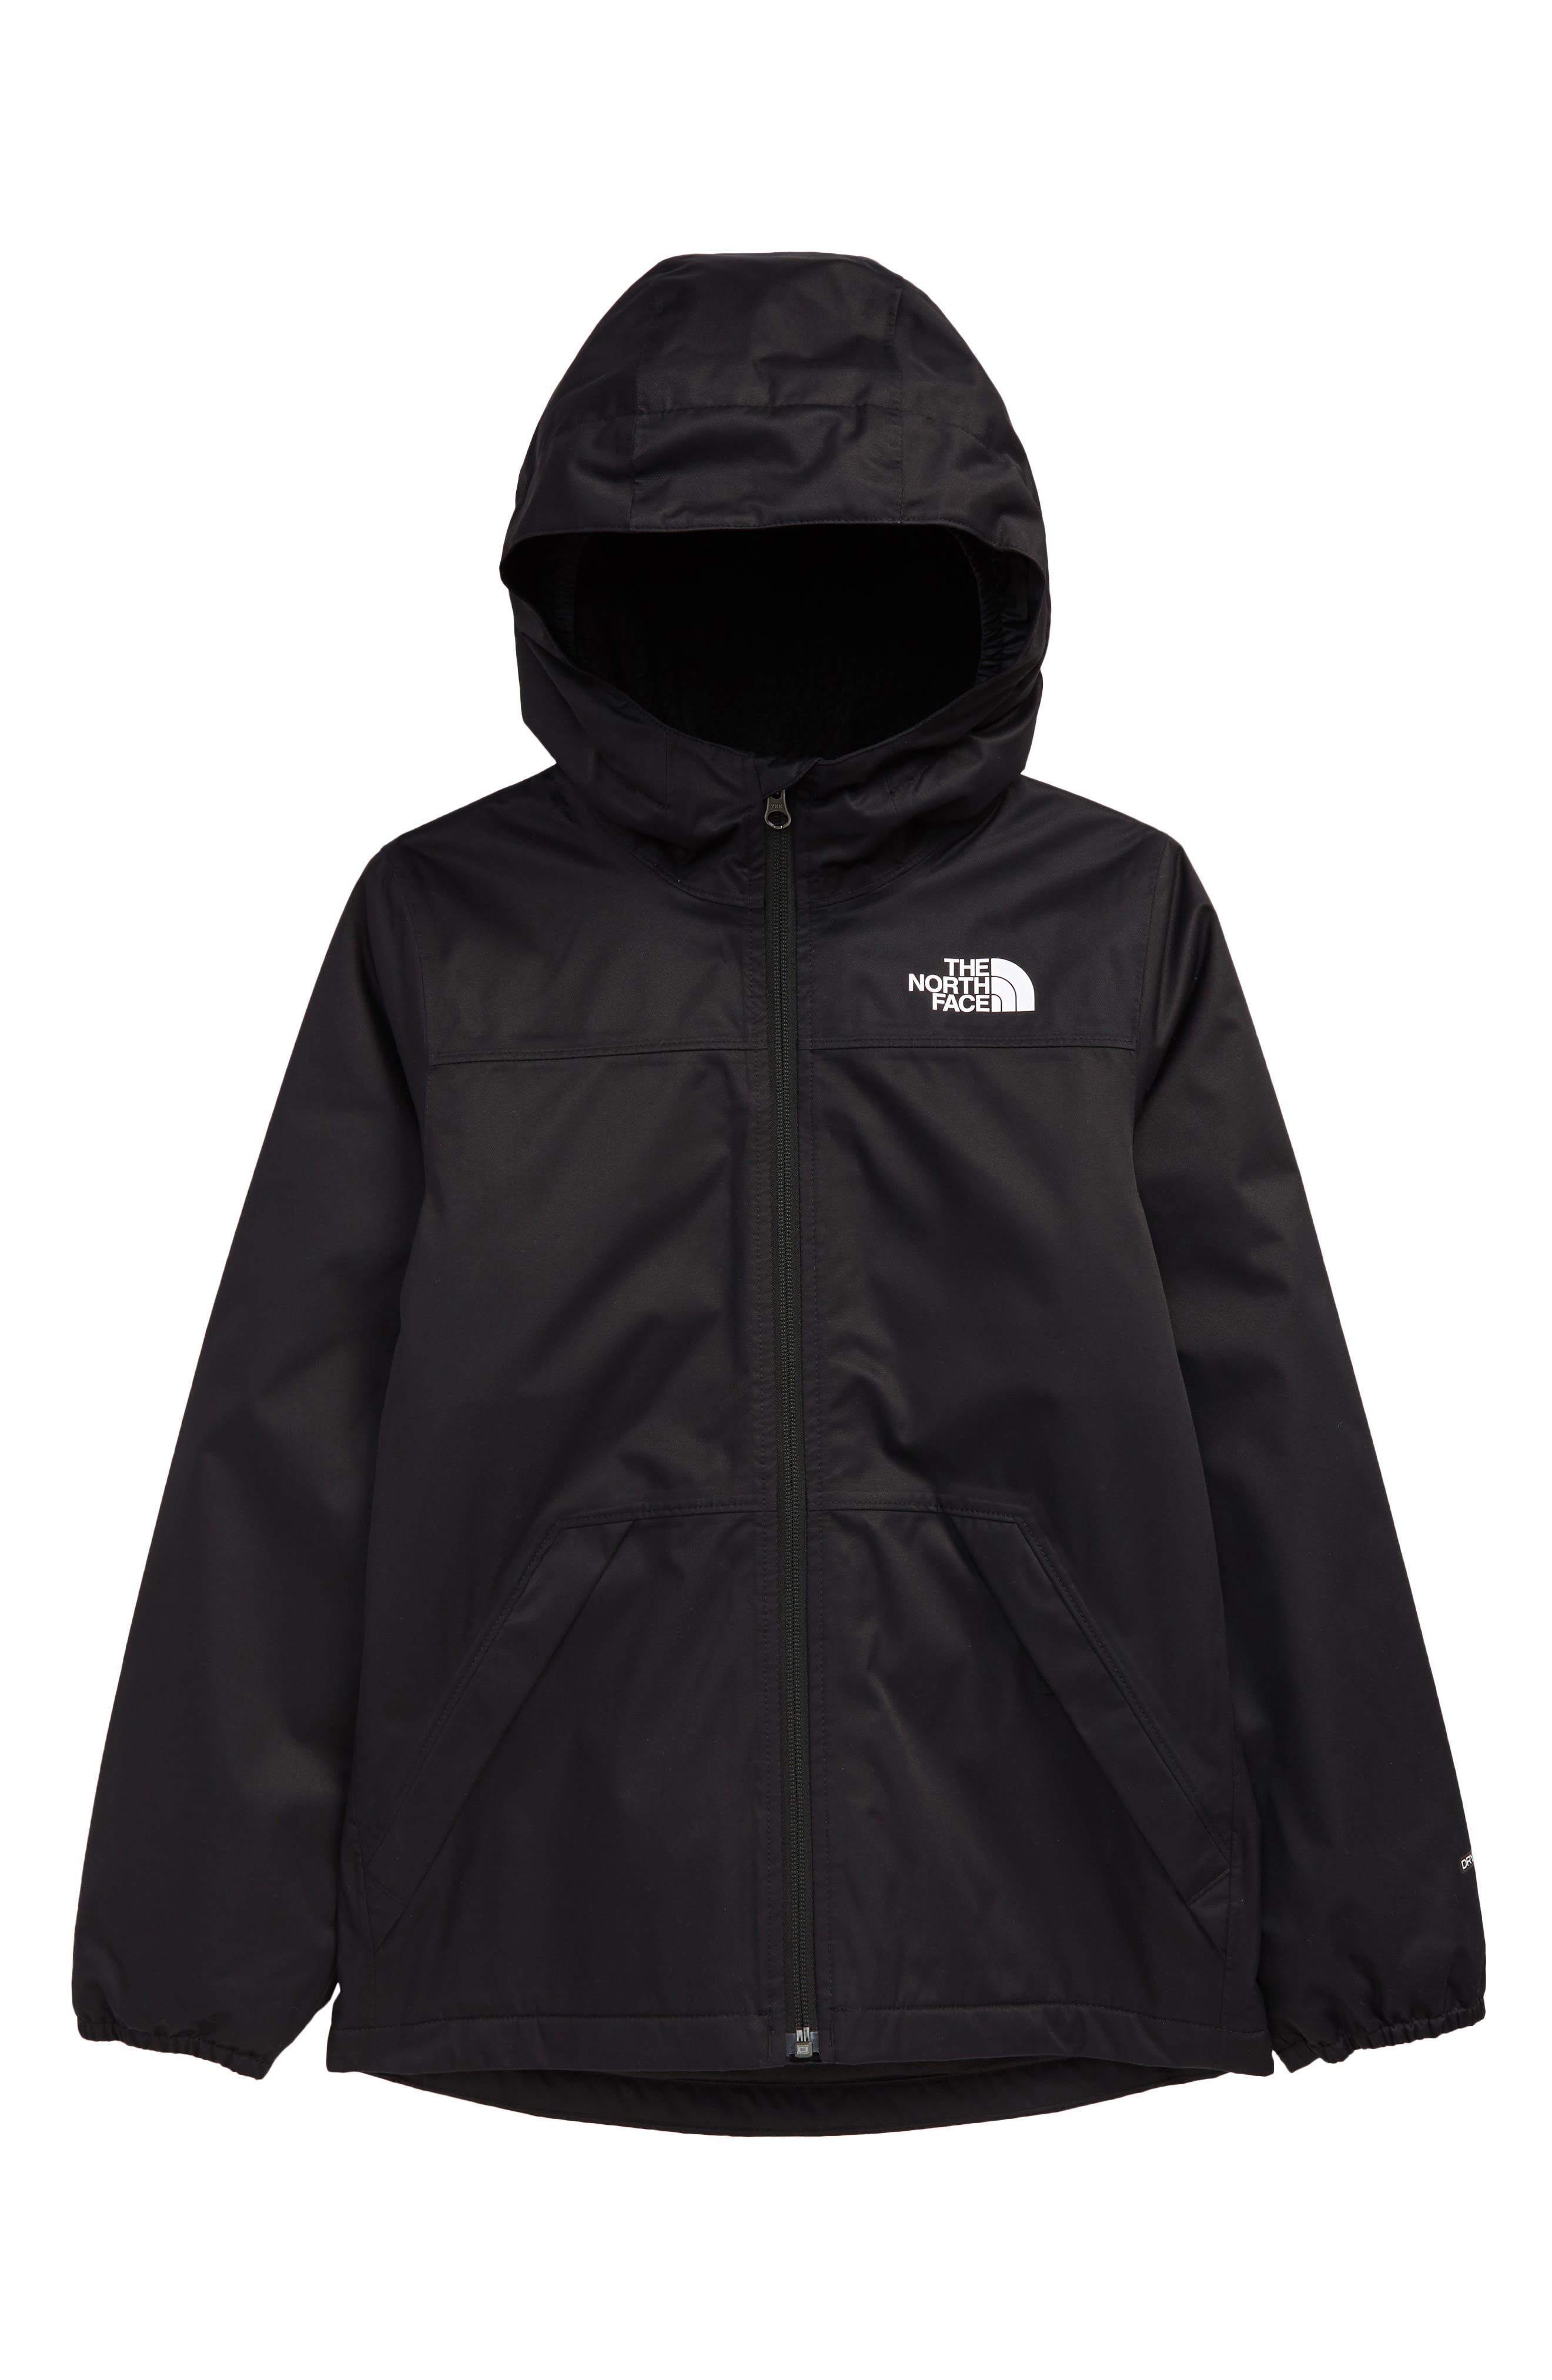 Image of The North Face Kids' Warm Storm Waterproof Hooded Rain Jacket